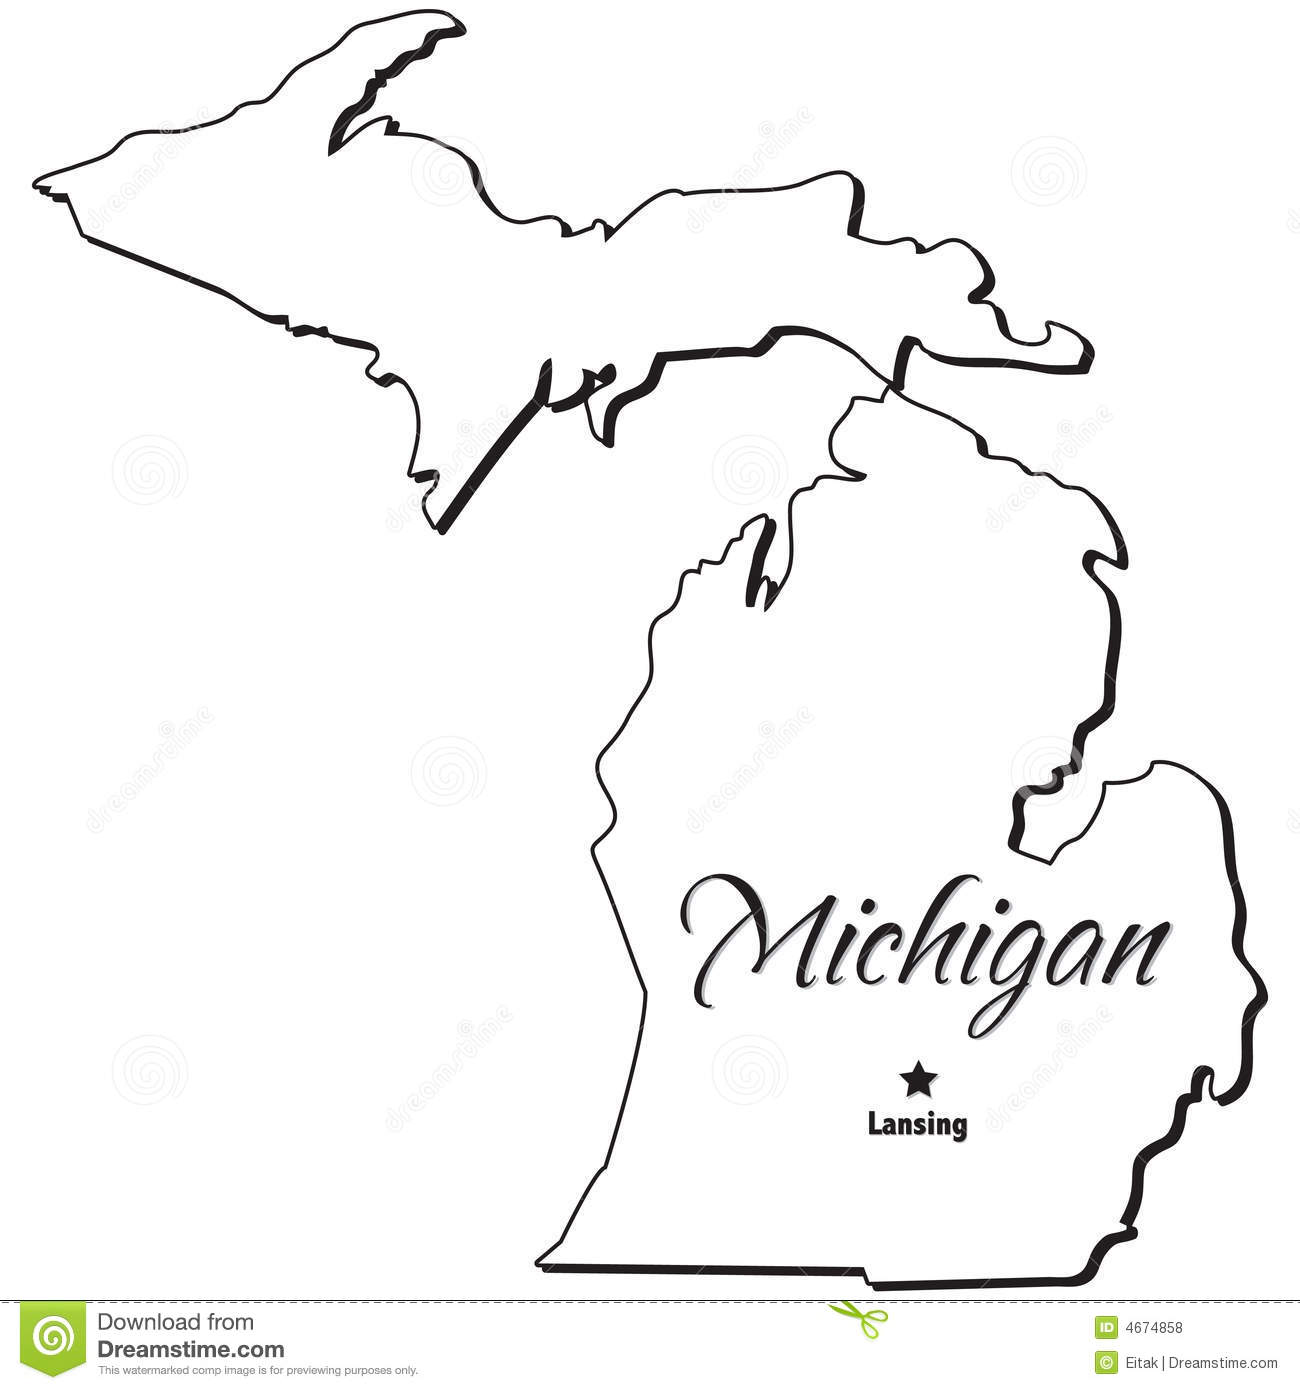 State of michigan logo clip art transparent library Michigan Outline Clipart - Clipart Kid transparent library